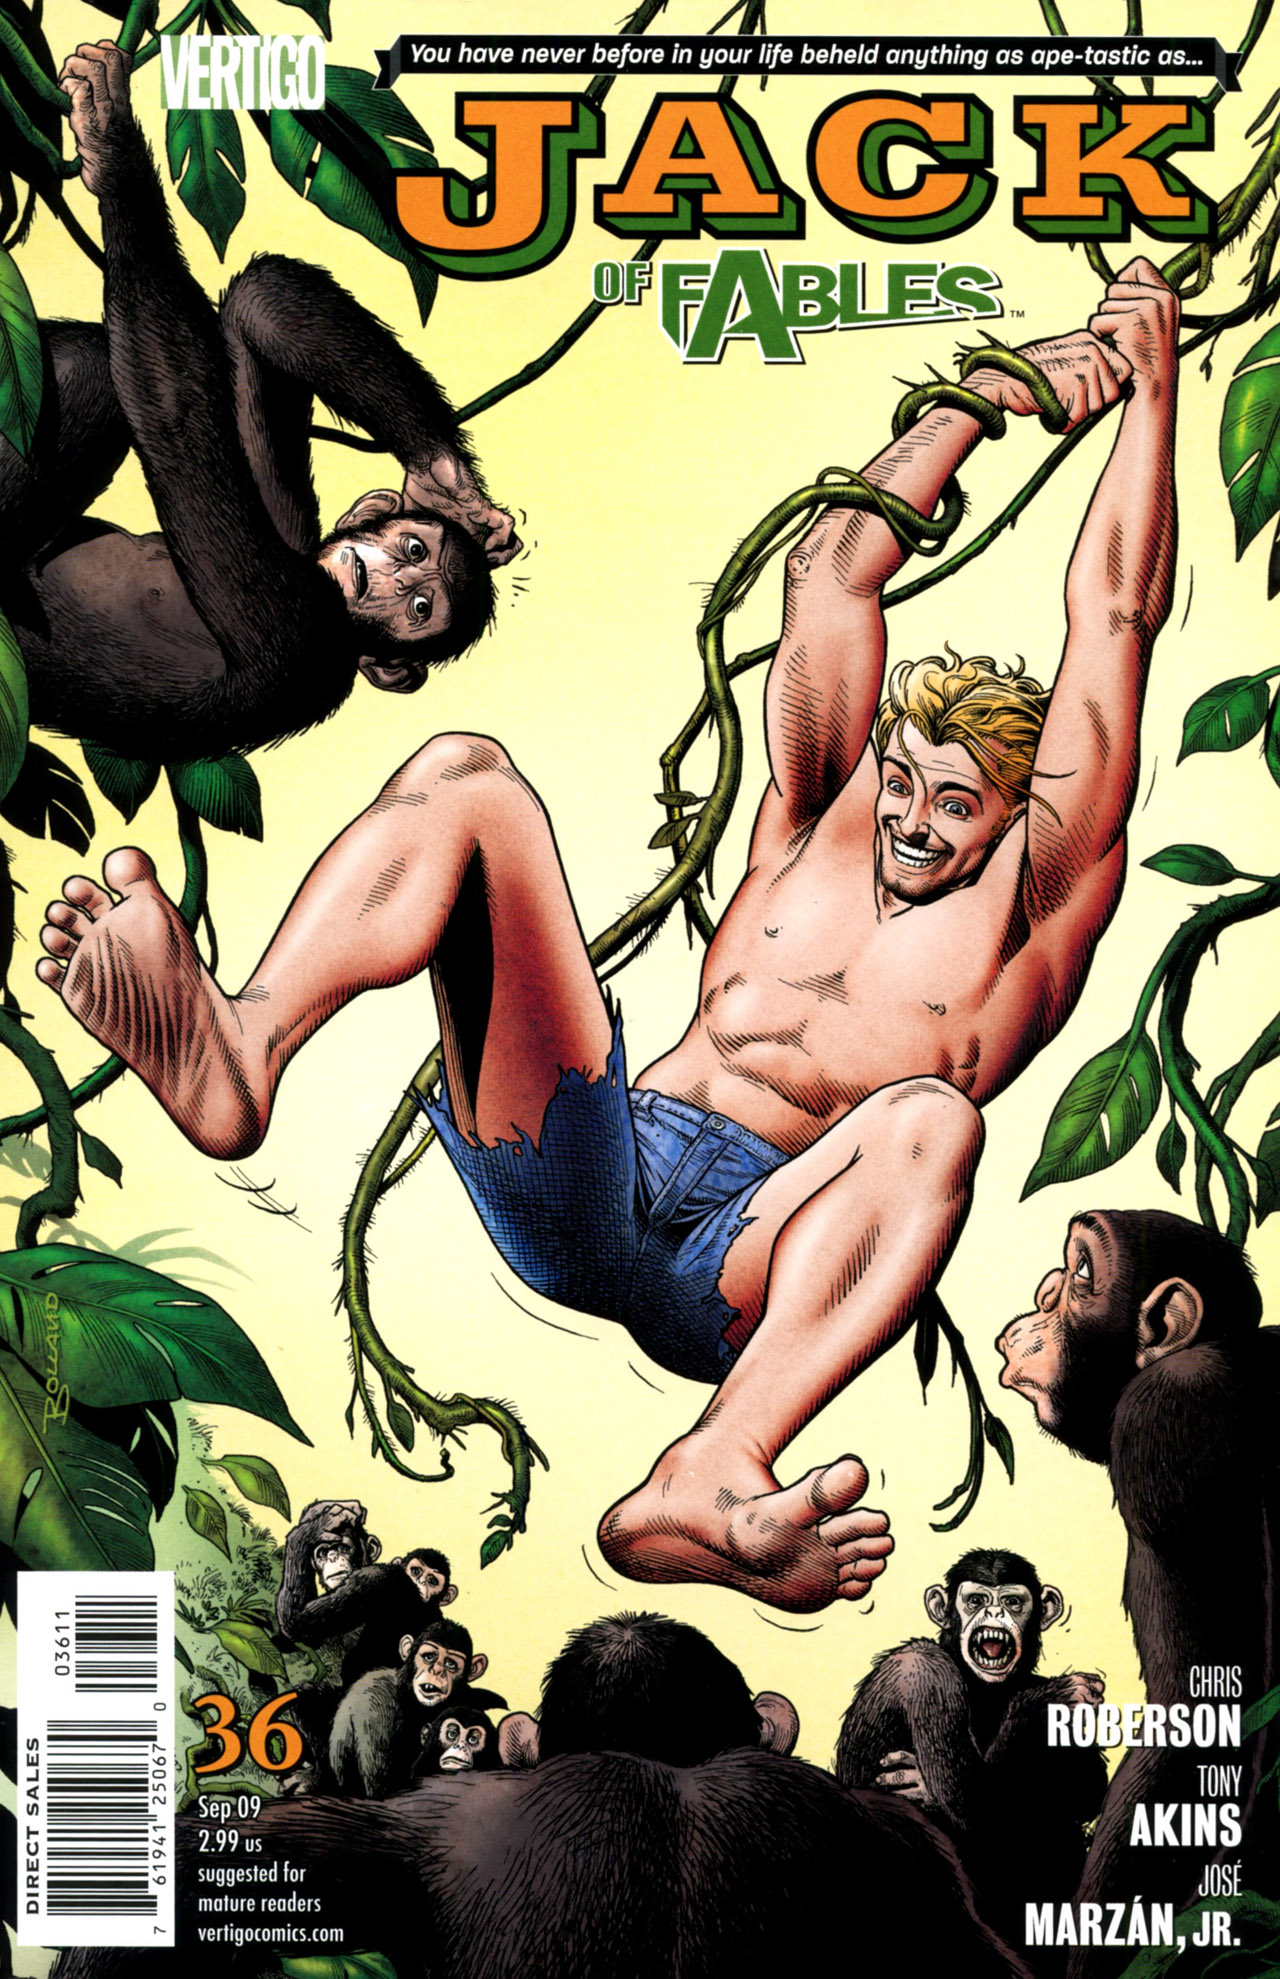 Jack of Fables 0036.jpg